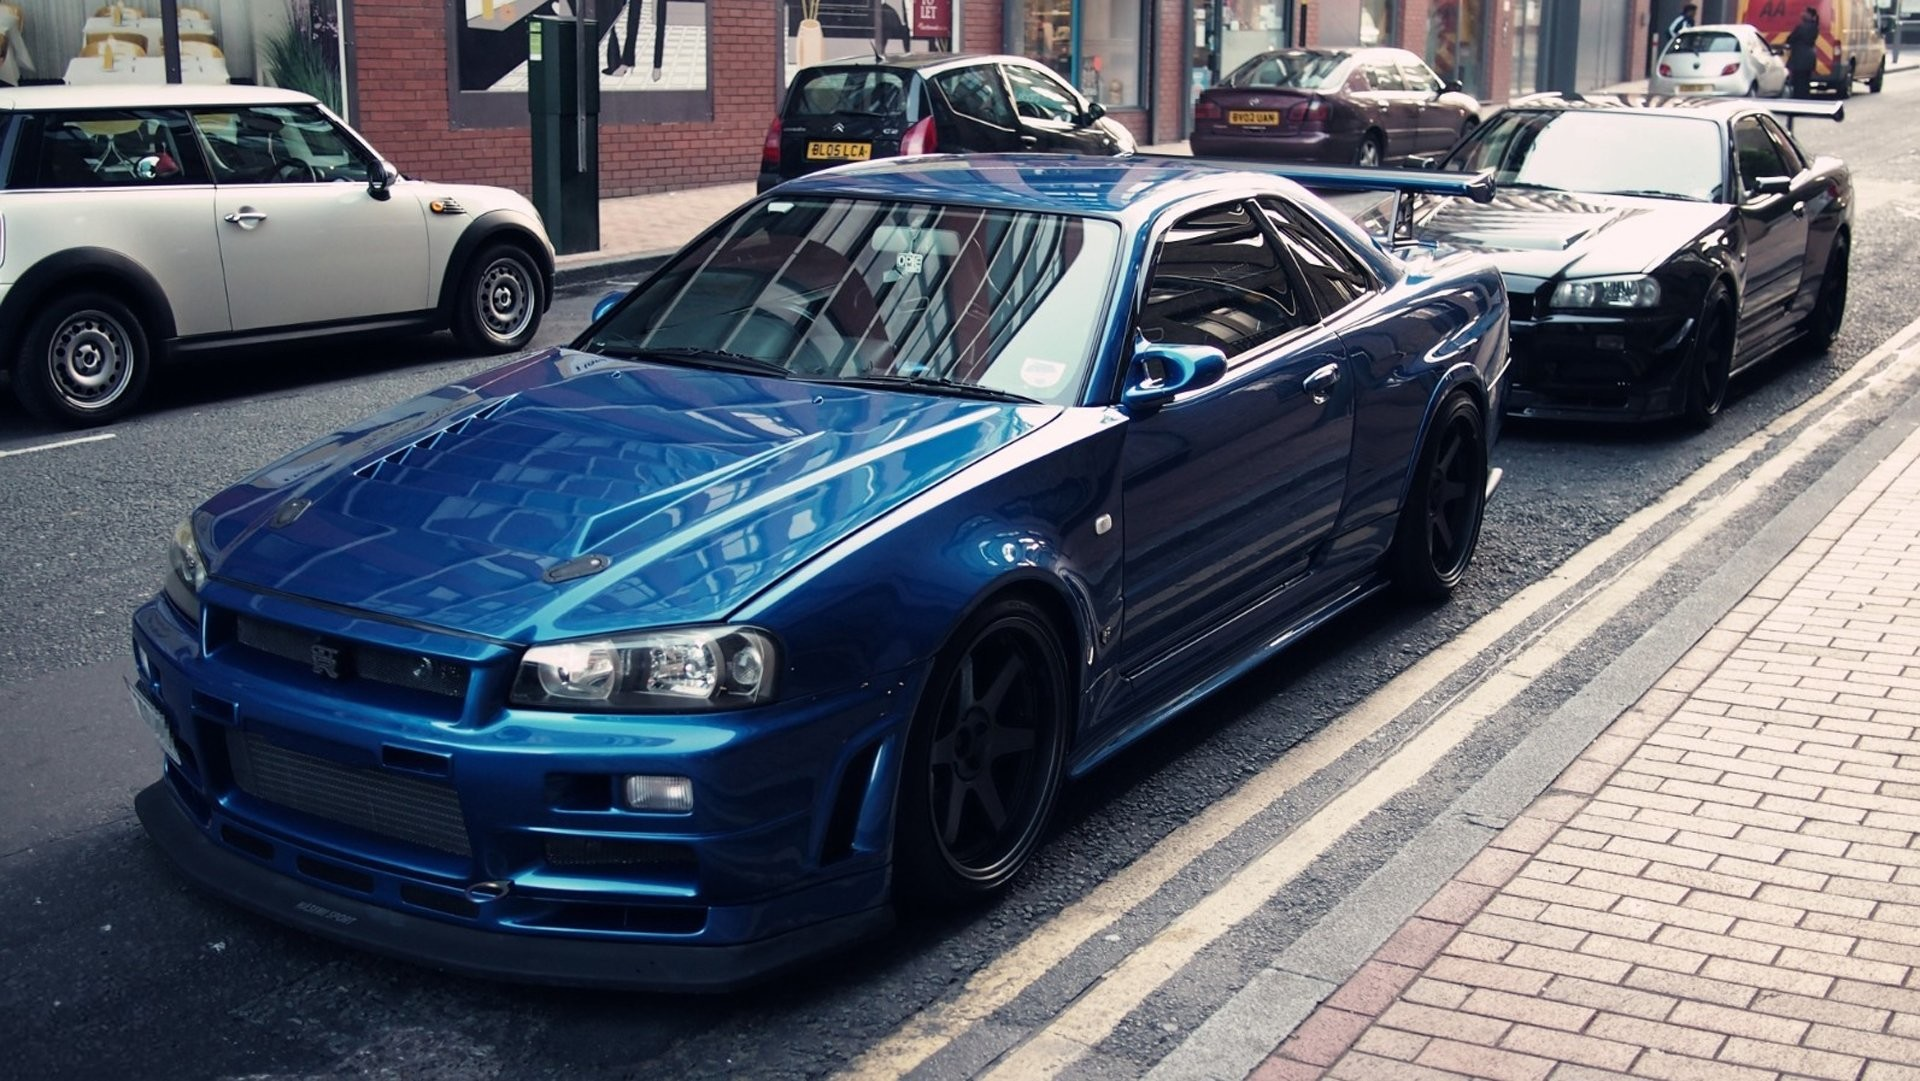 Nissan Skyline Gtr R34 Hd Phone Wallpapers Nissan Recomended Car